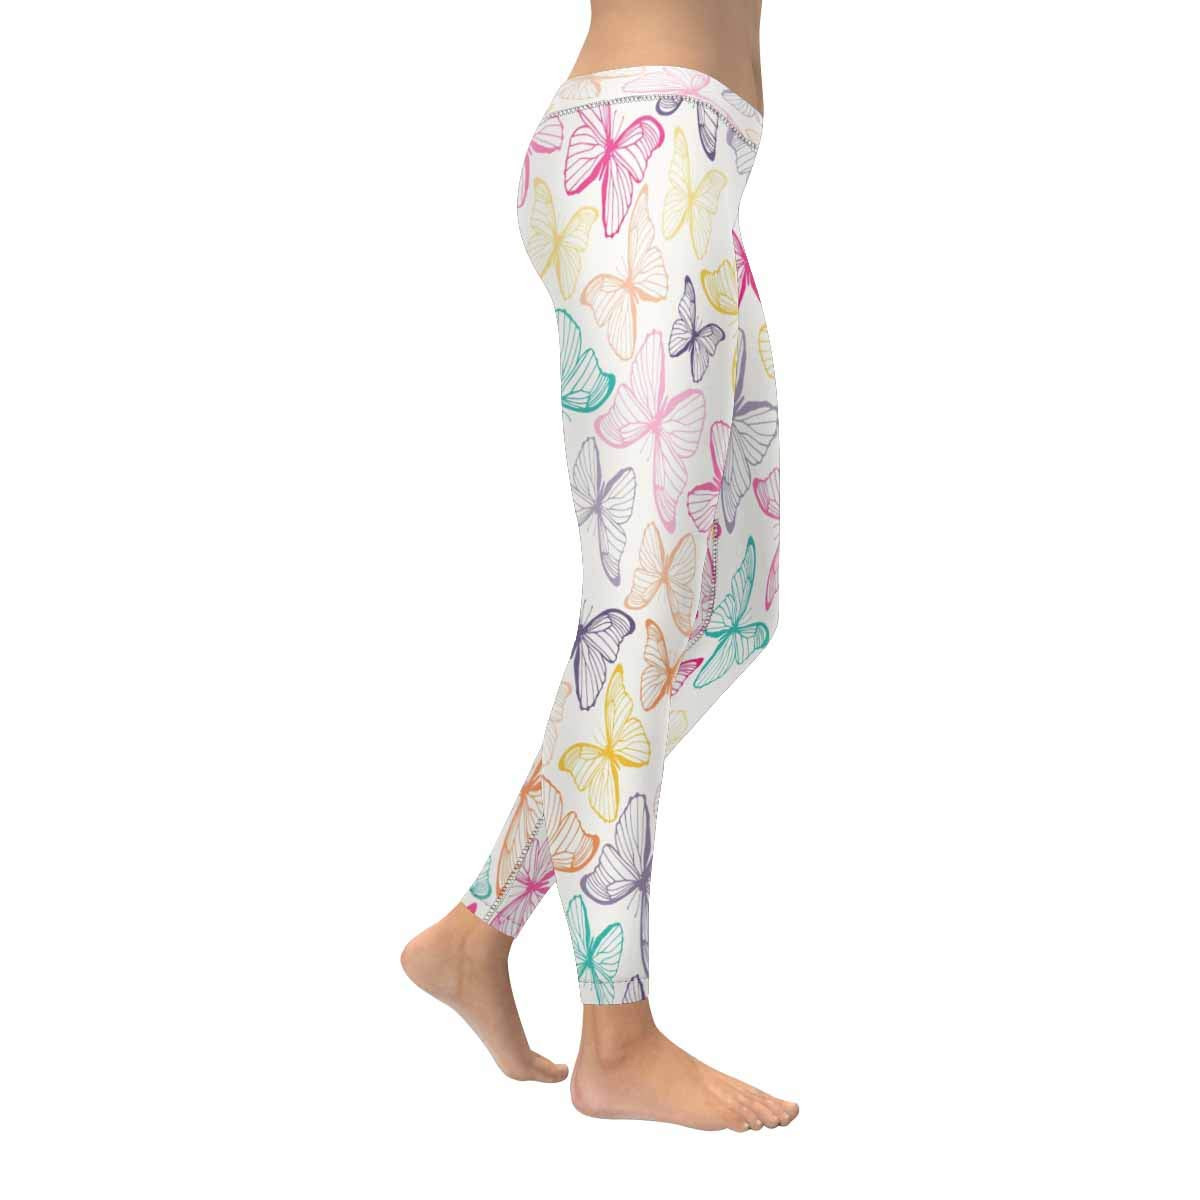 InterestPrint Womens Stretchy Yoga Pants Funny Butterflies Soft Slim Low Rise Leggings XXS-5XL